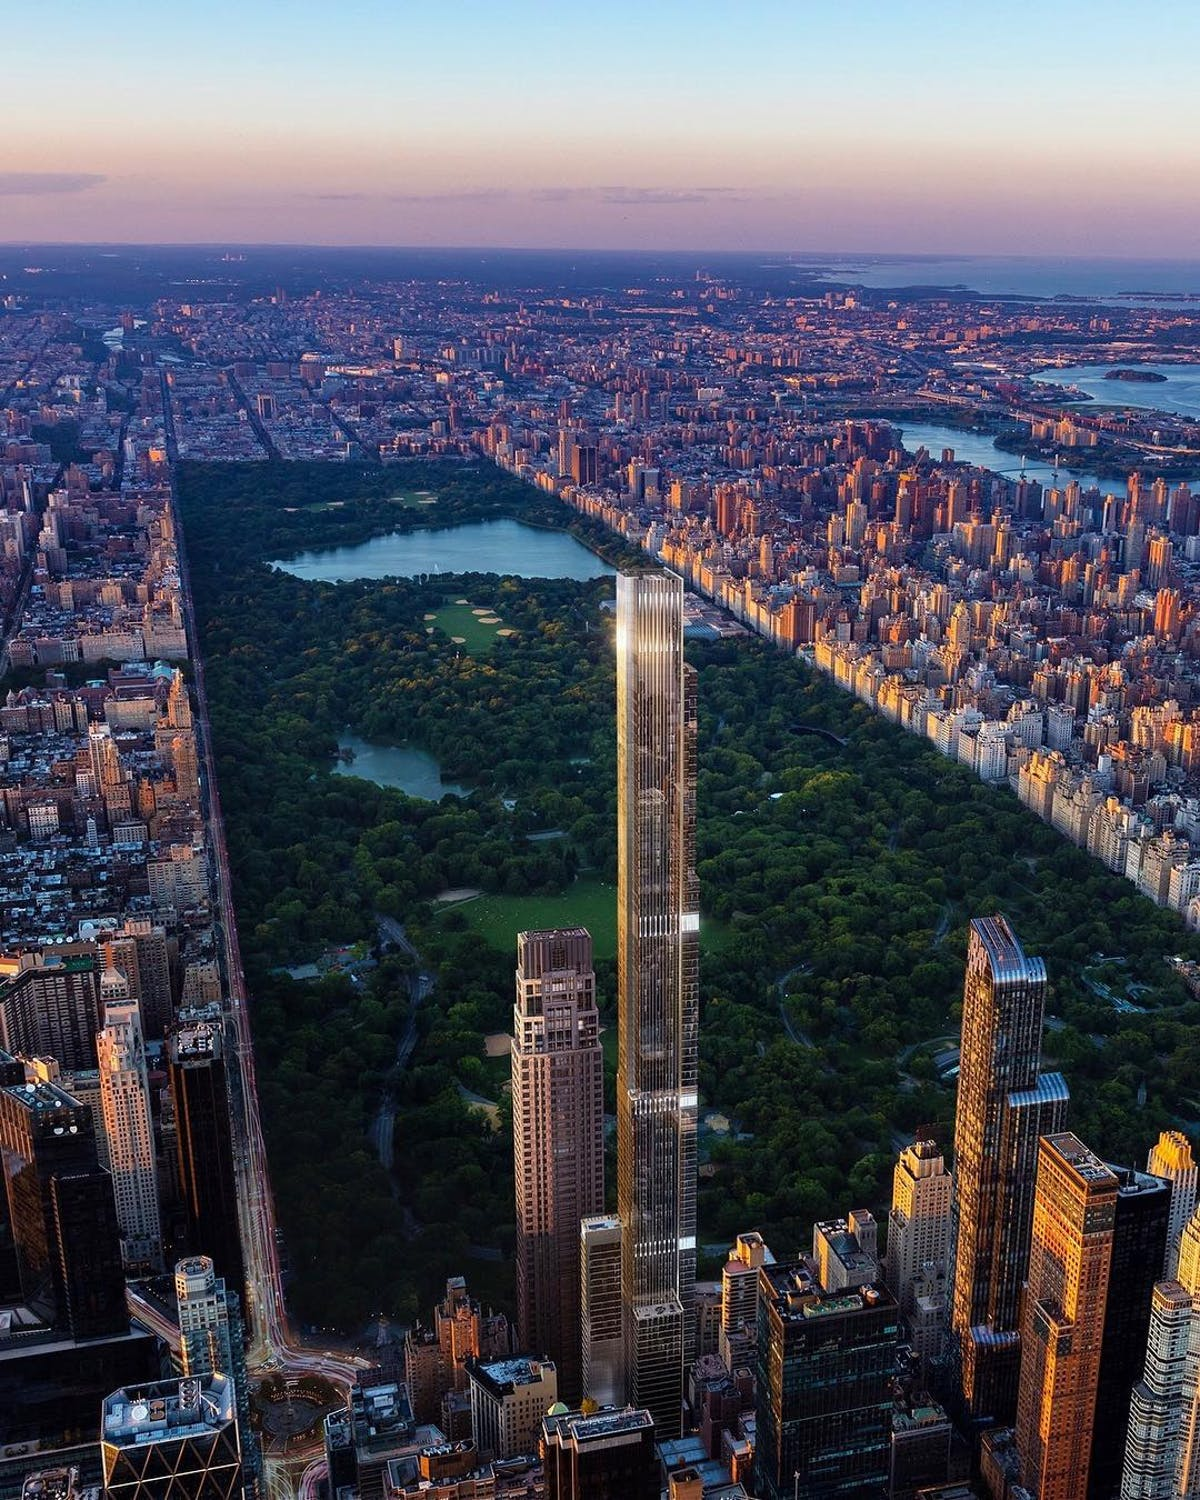 Central Park People: Central Park Tower Breaks Willis Tower's Record 45-year